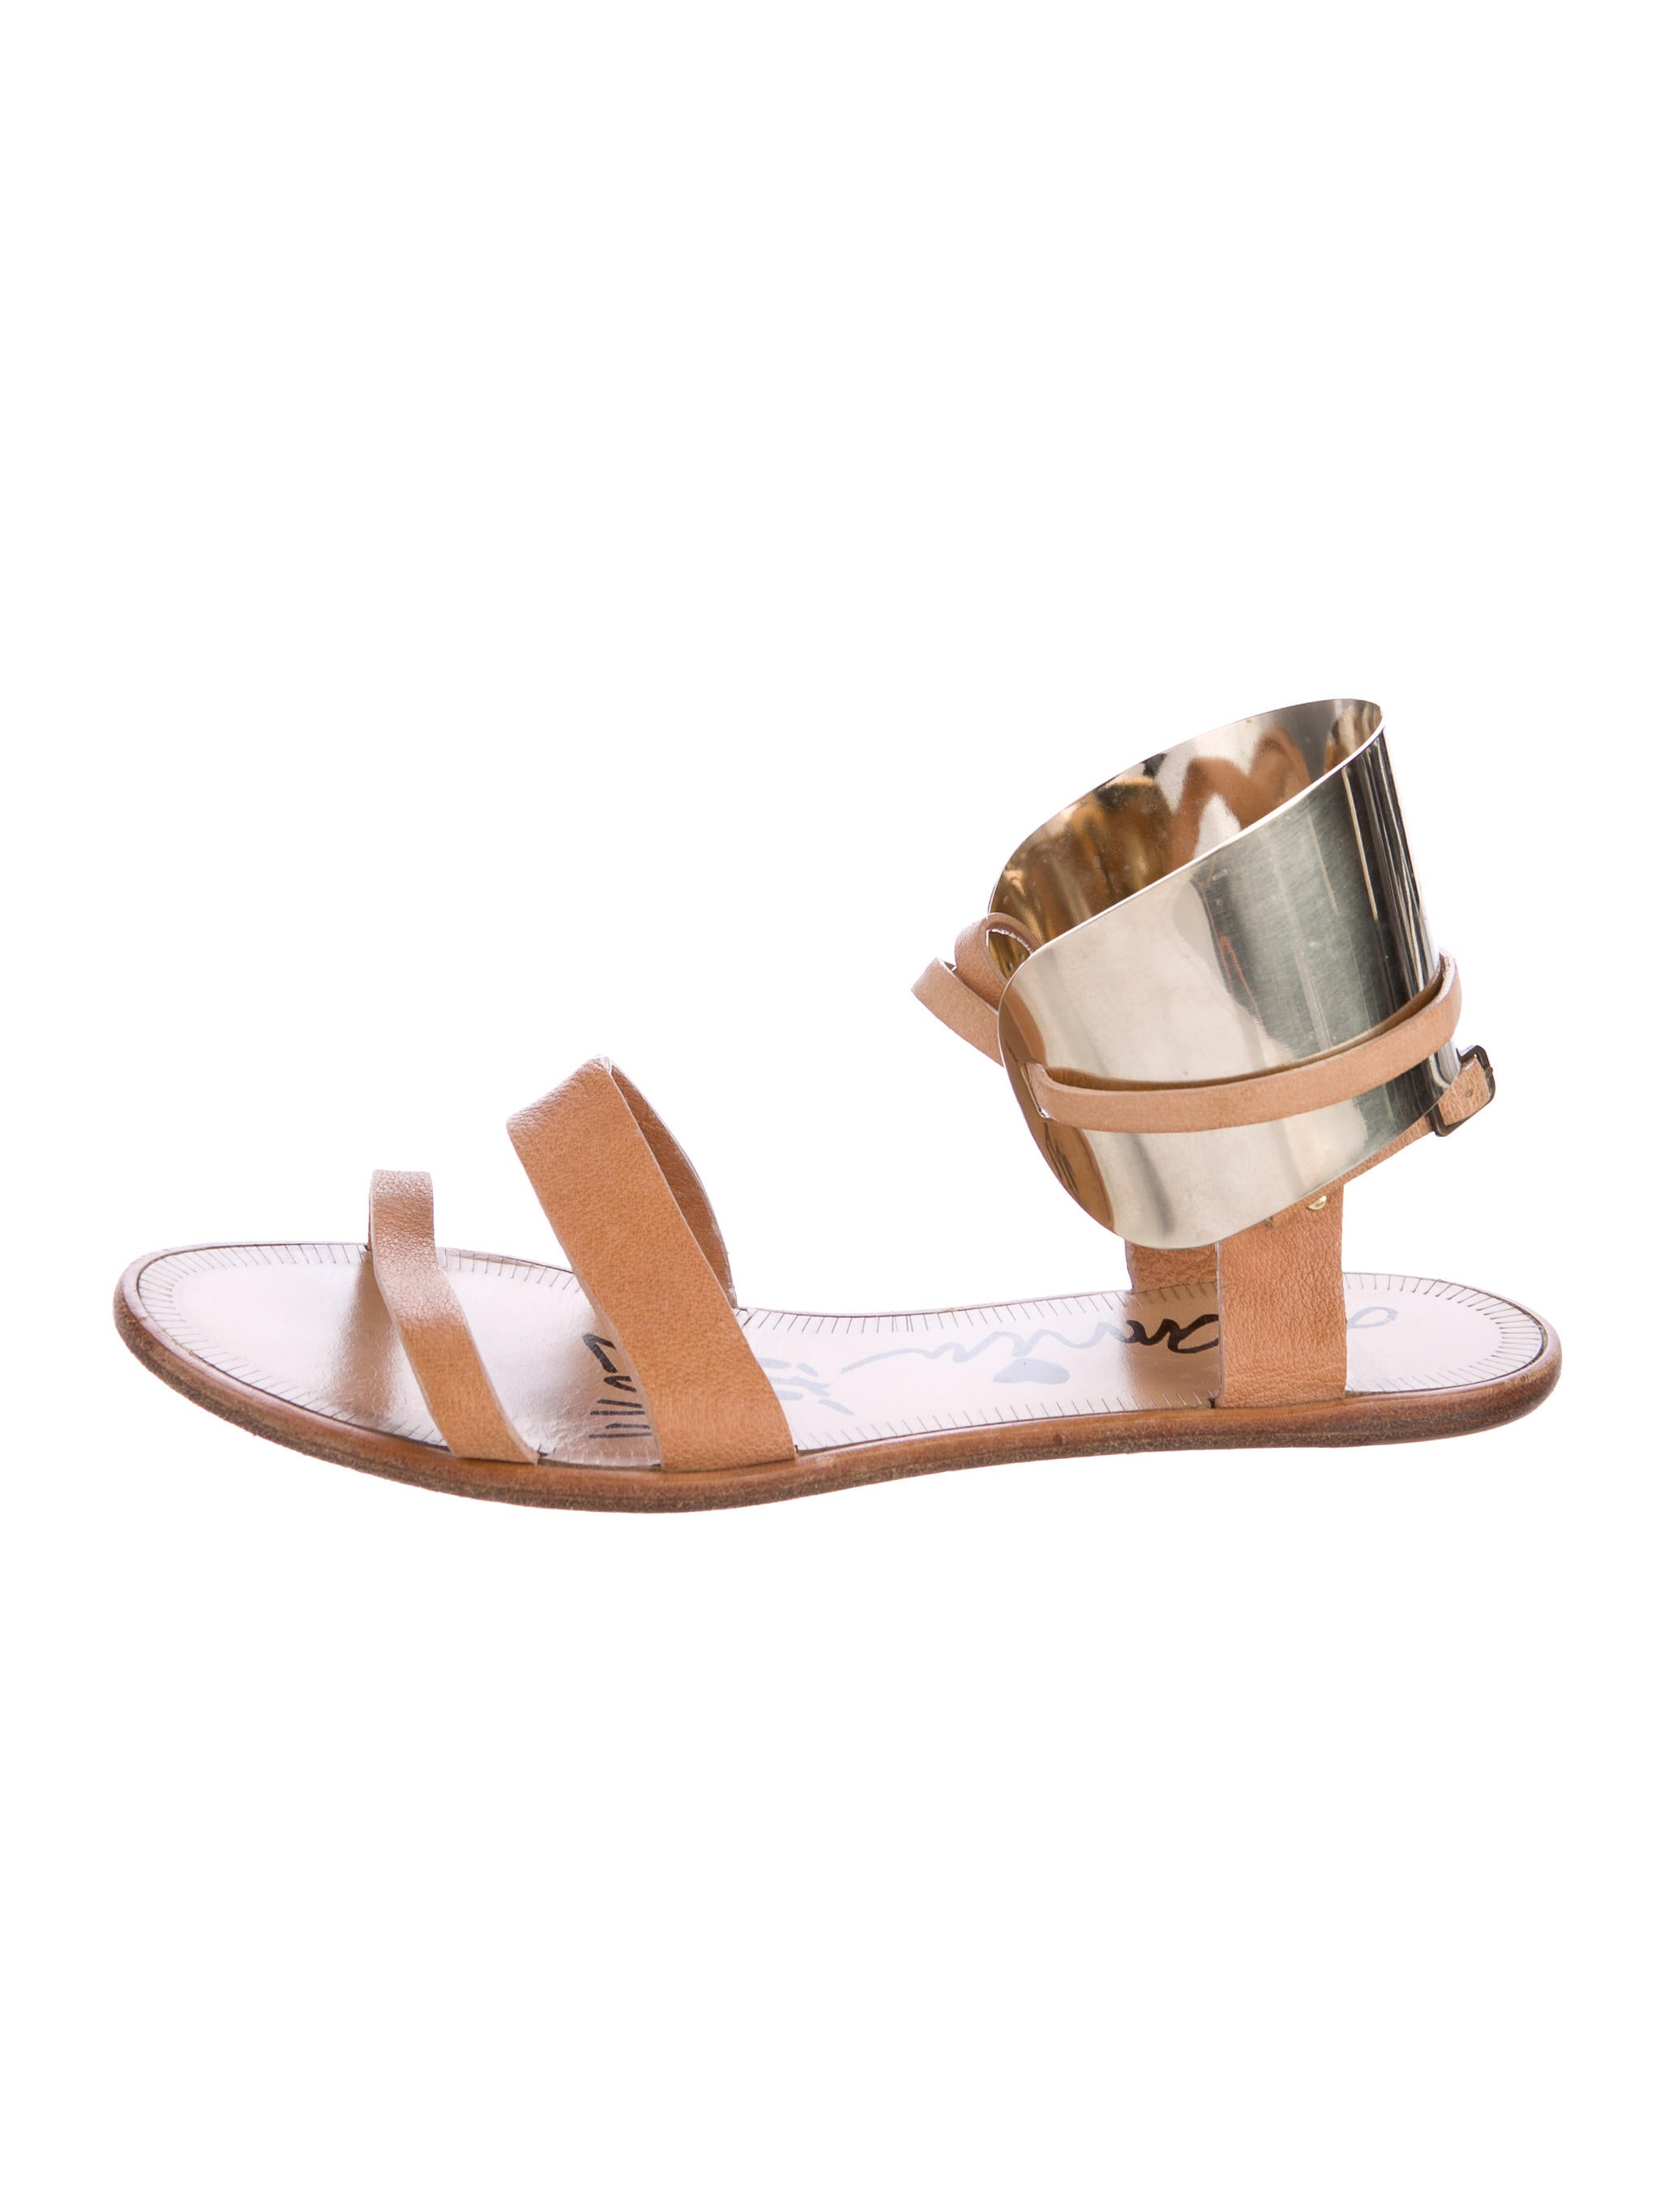 Lanvin Ankle Cuff Sandals free shipping popular For sale online free shipping discounts pFzBrdVM